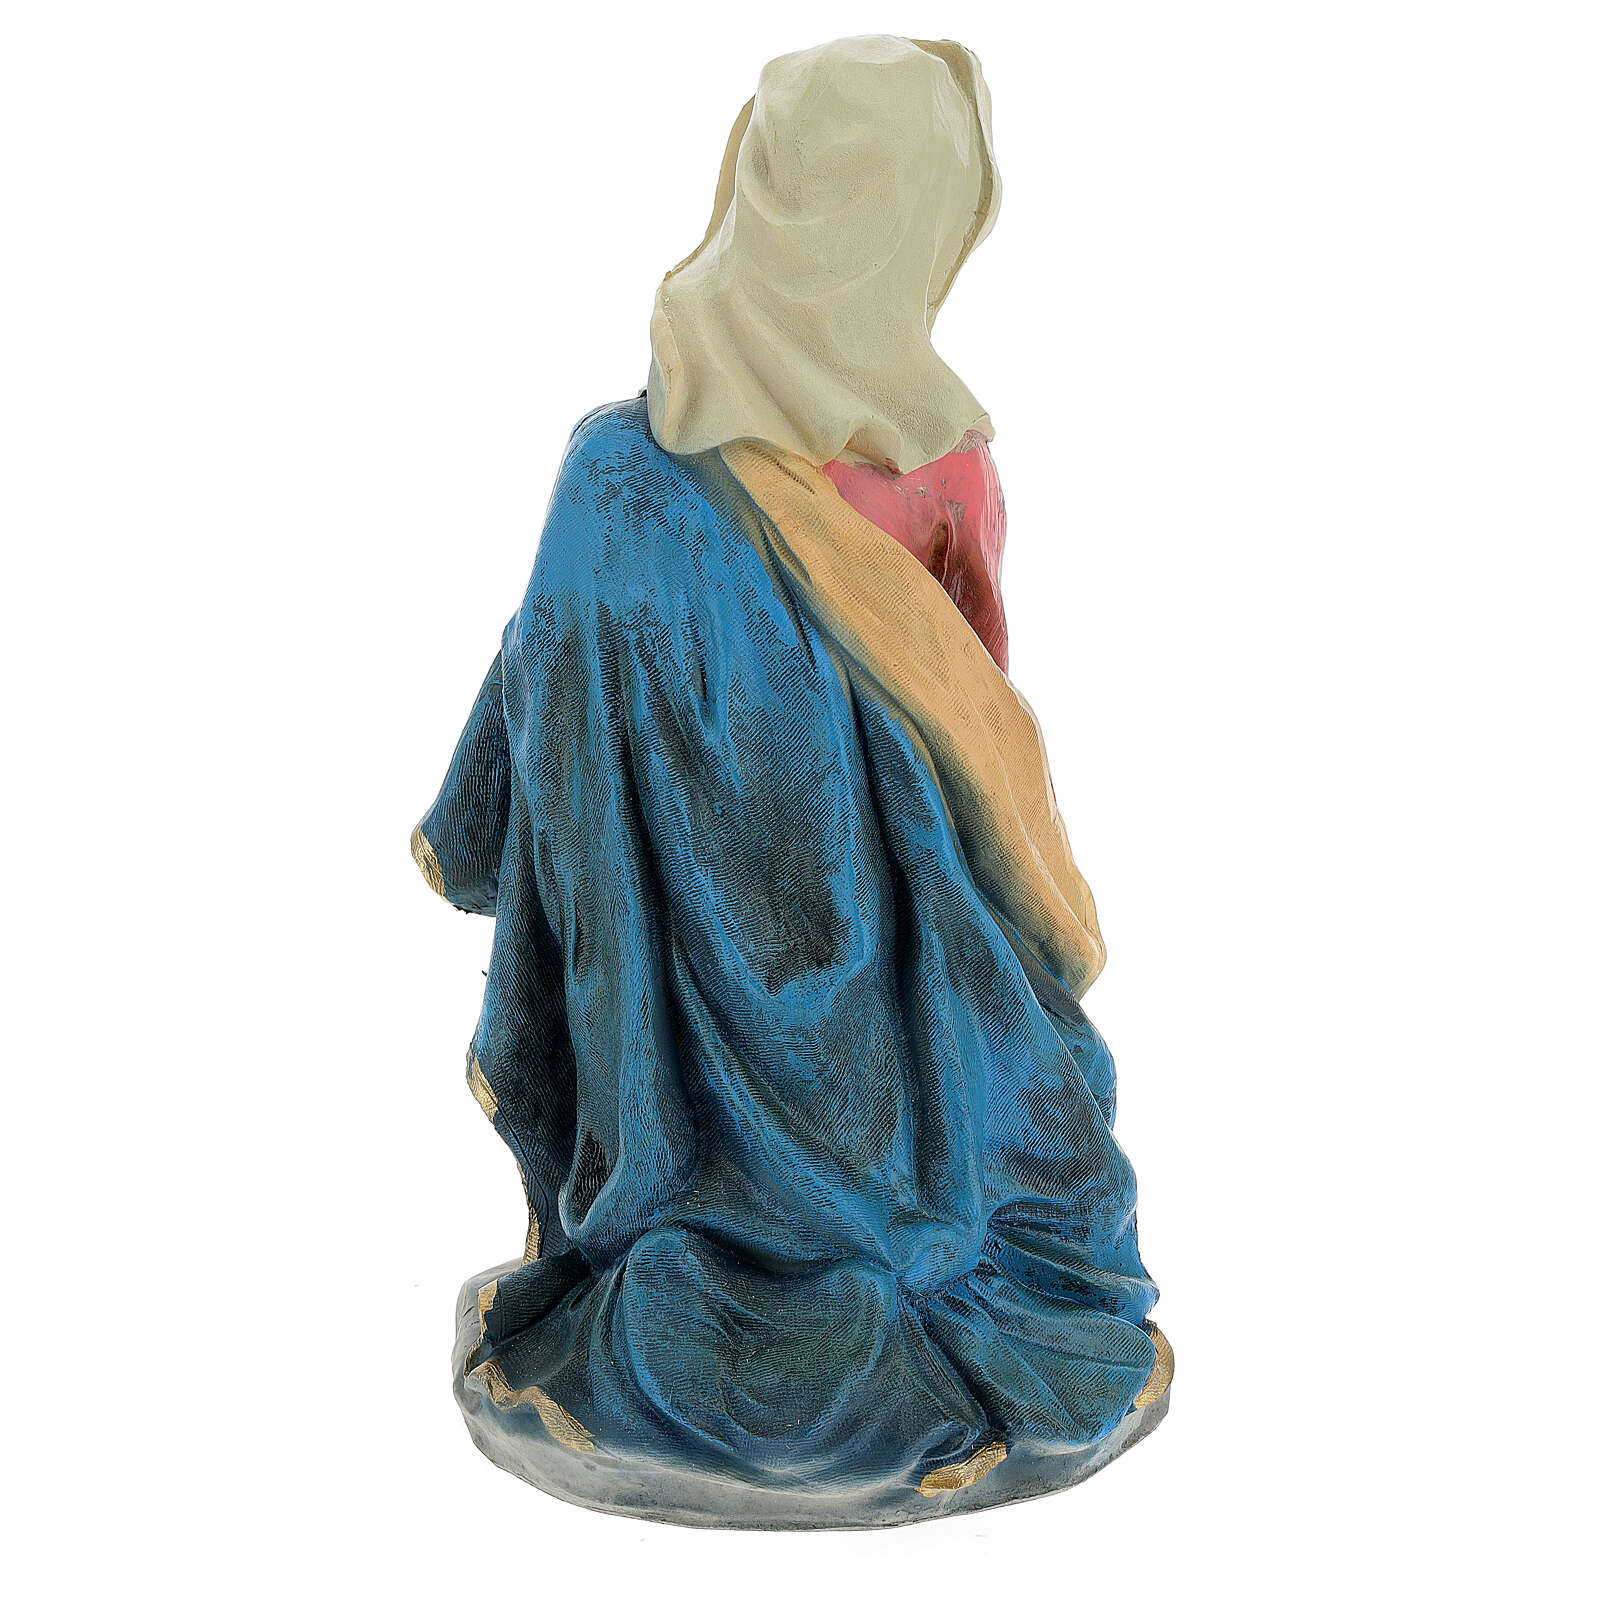 Natività 50 cm presepe resina colorata set 5 pz 3